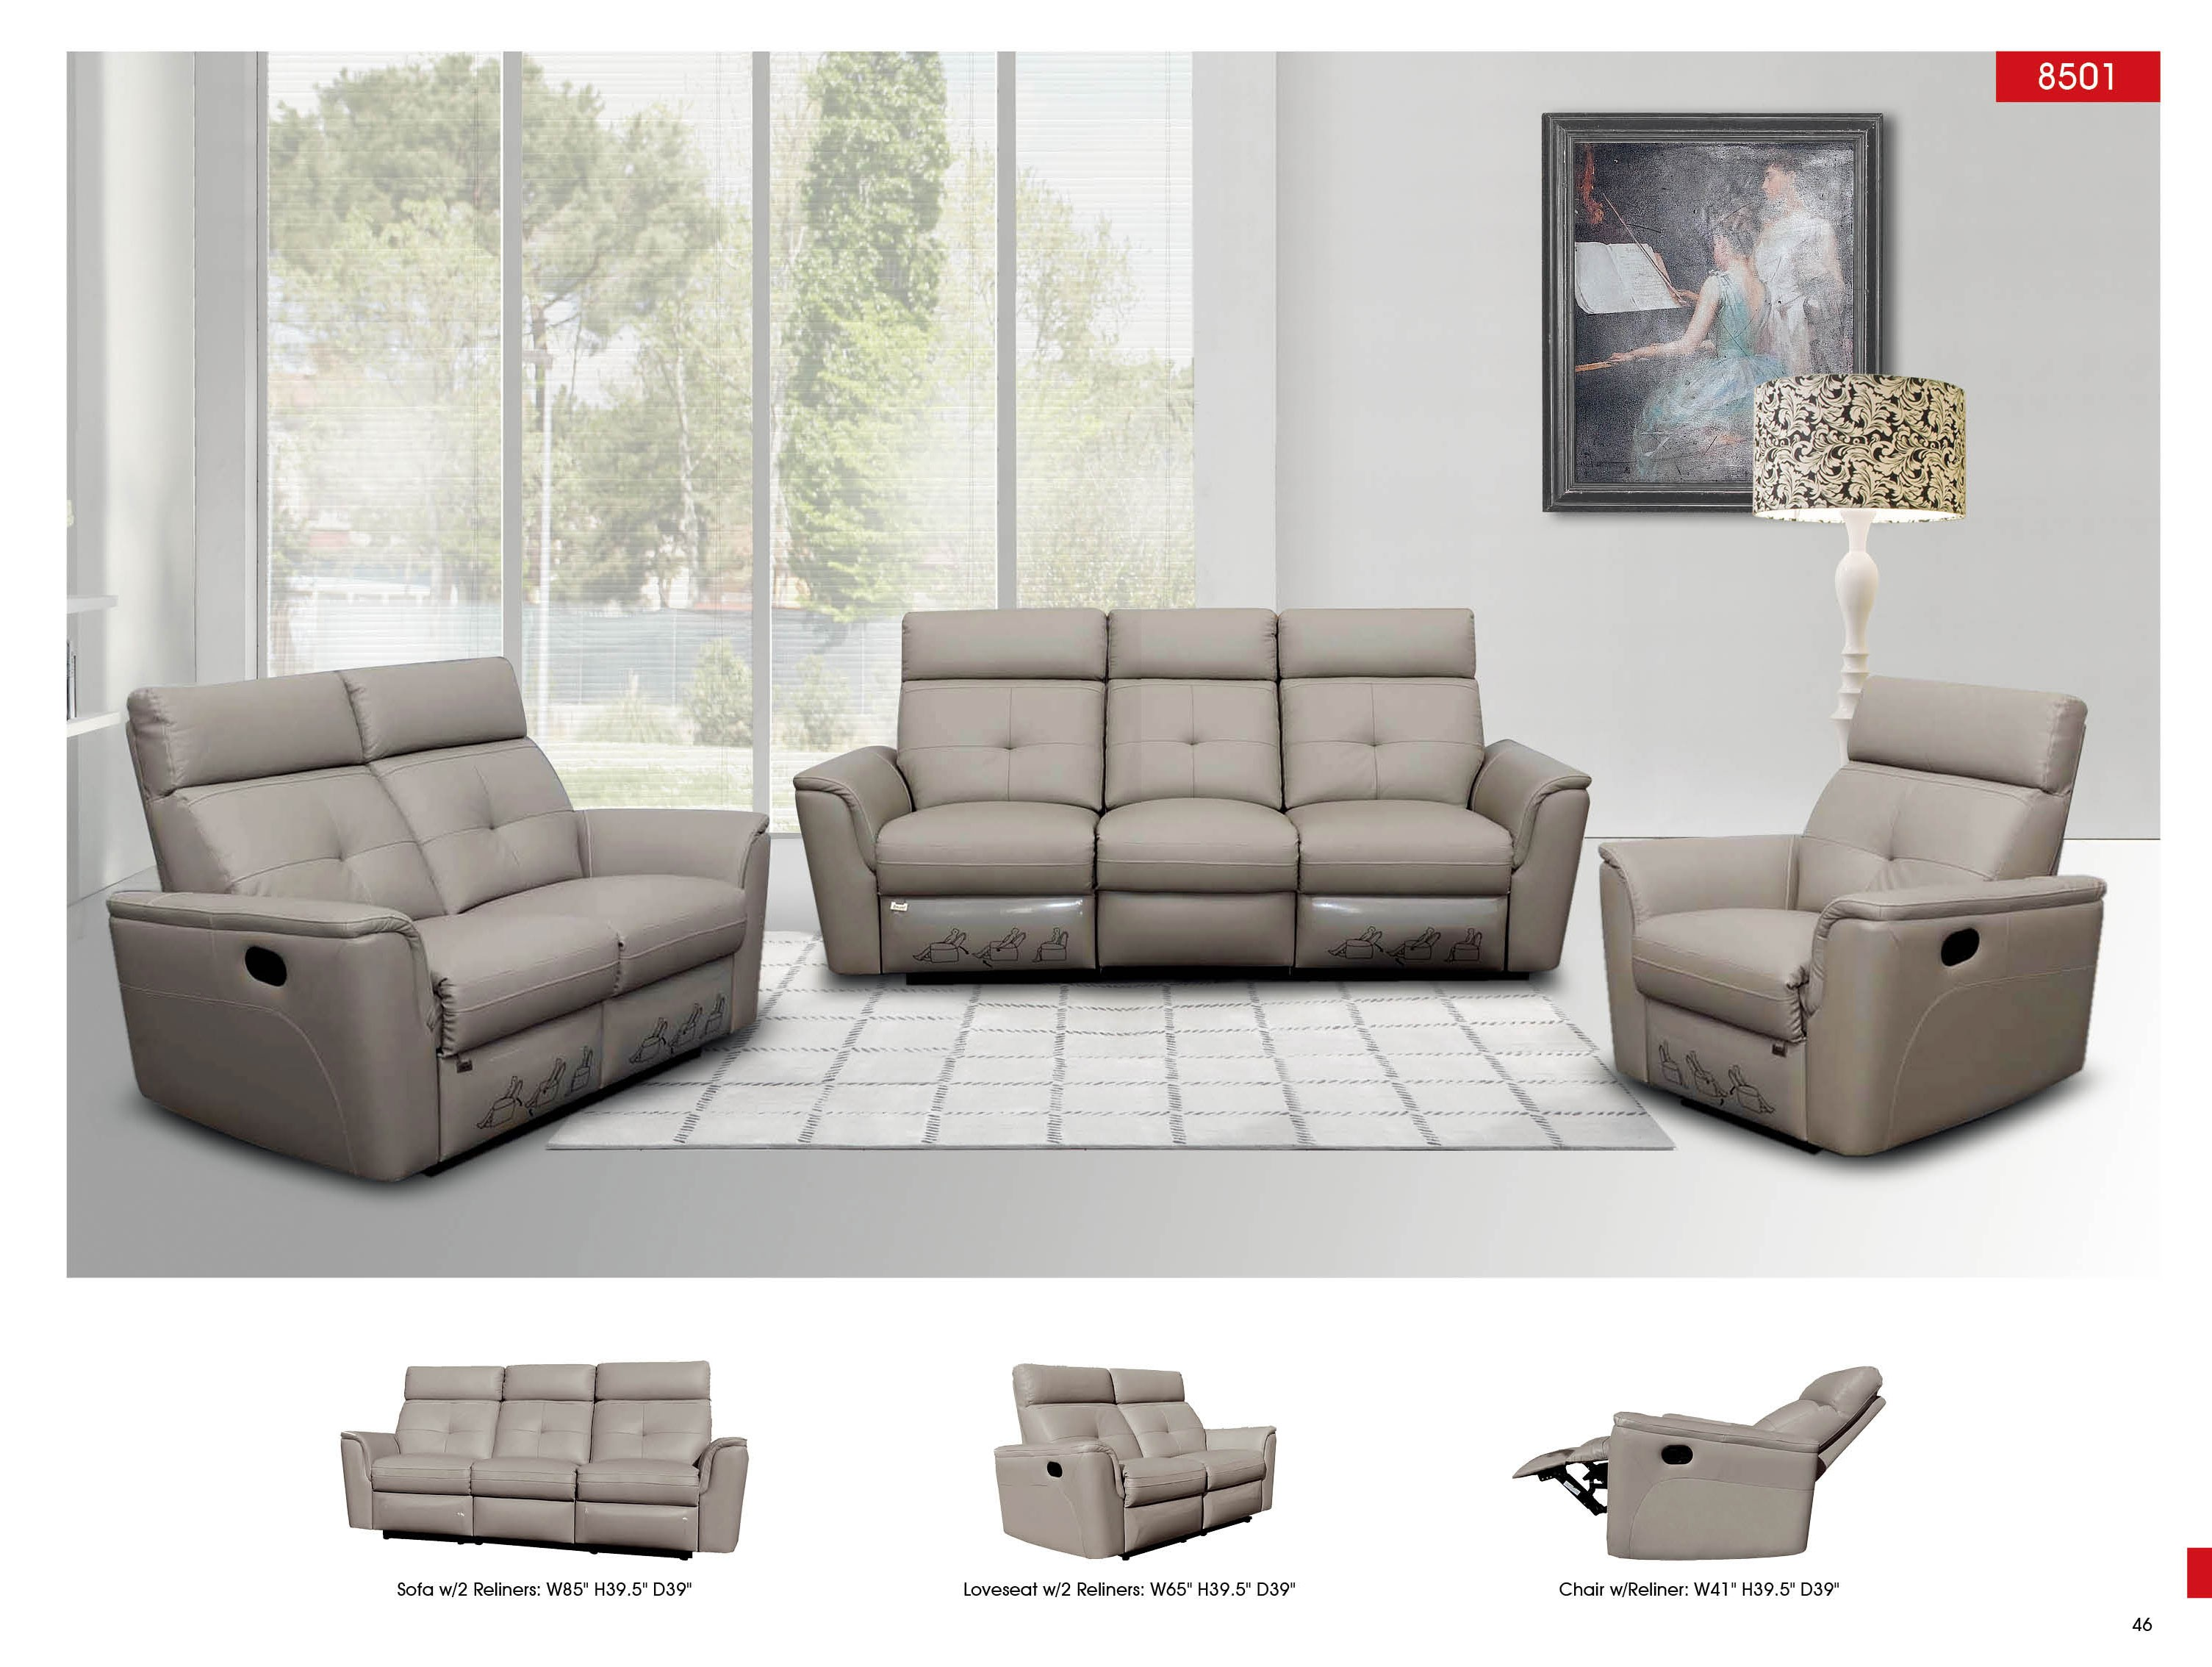 8501 contemporary contemporary reclining leather sofa nova for Living room furniture modern